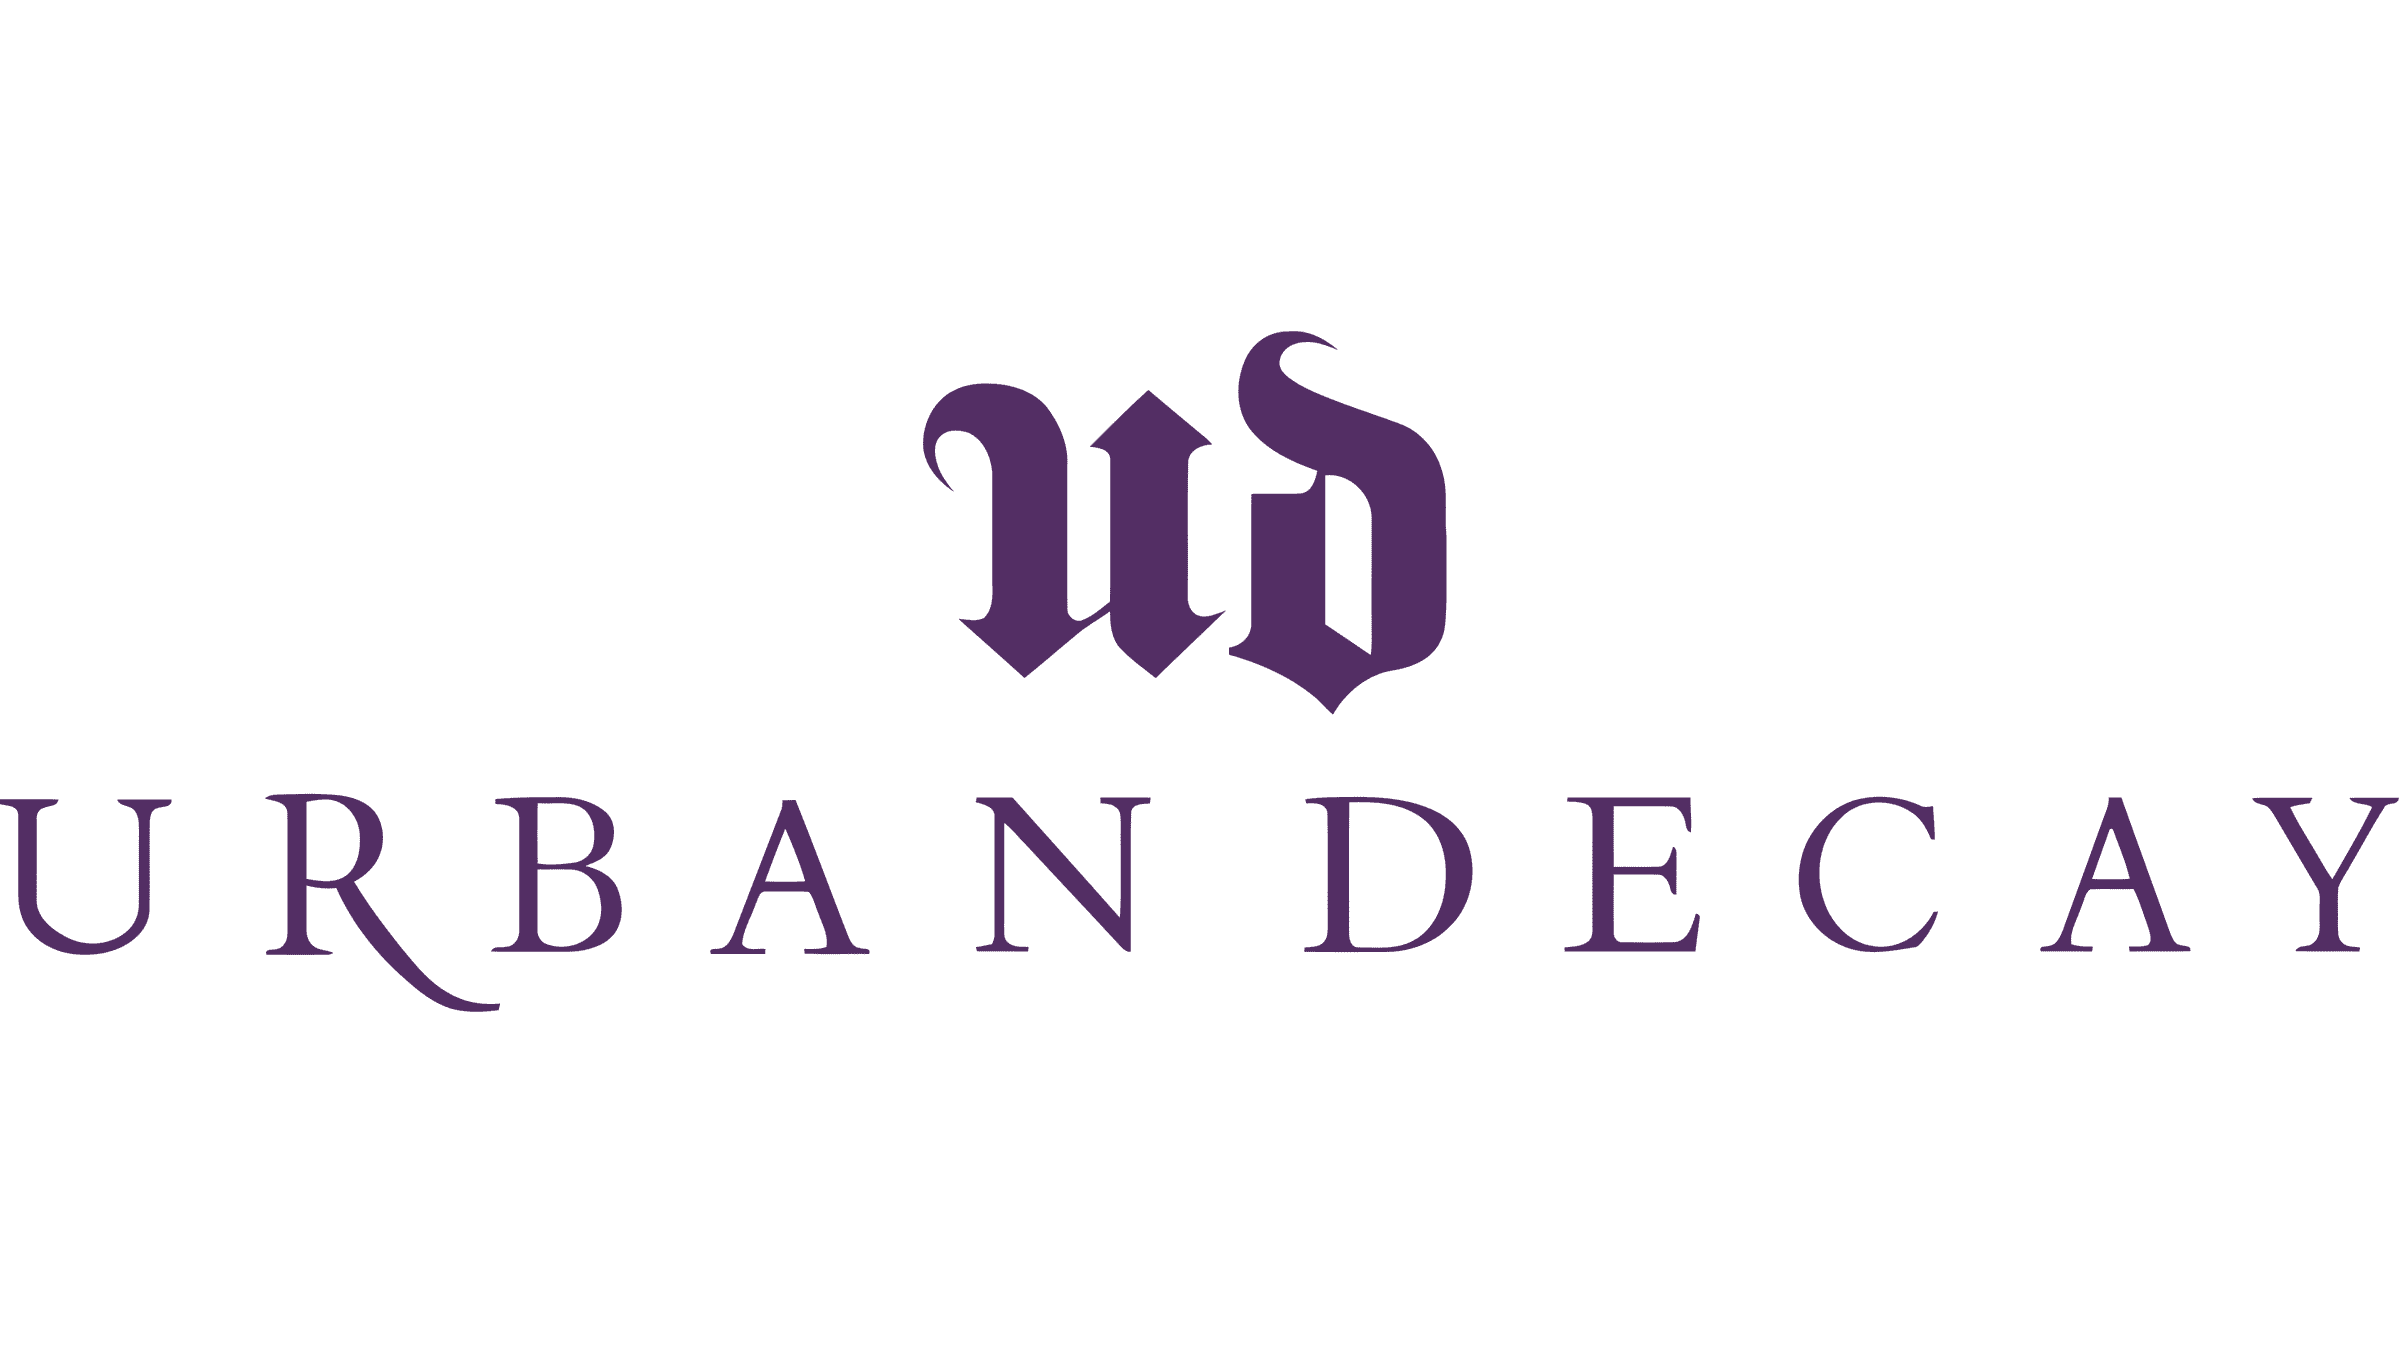 Urban Decay logo and symbol, meaning, history, PNG